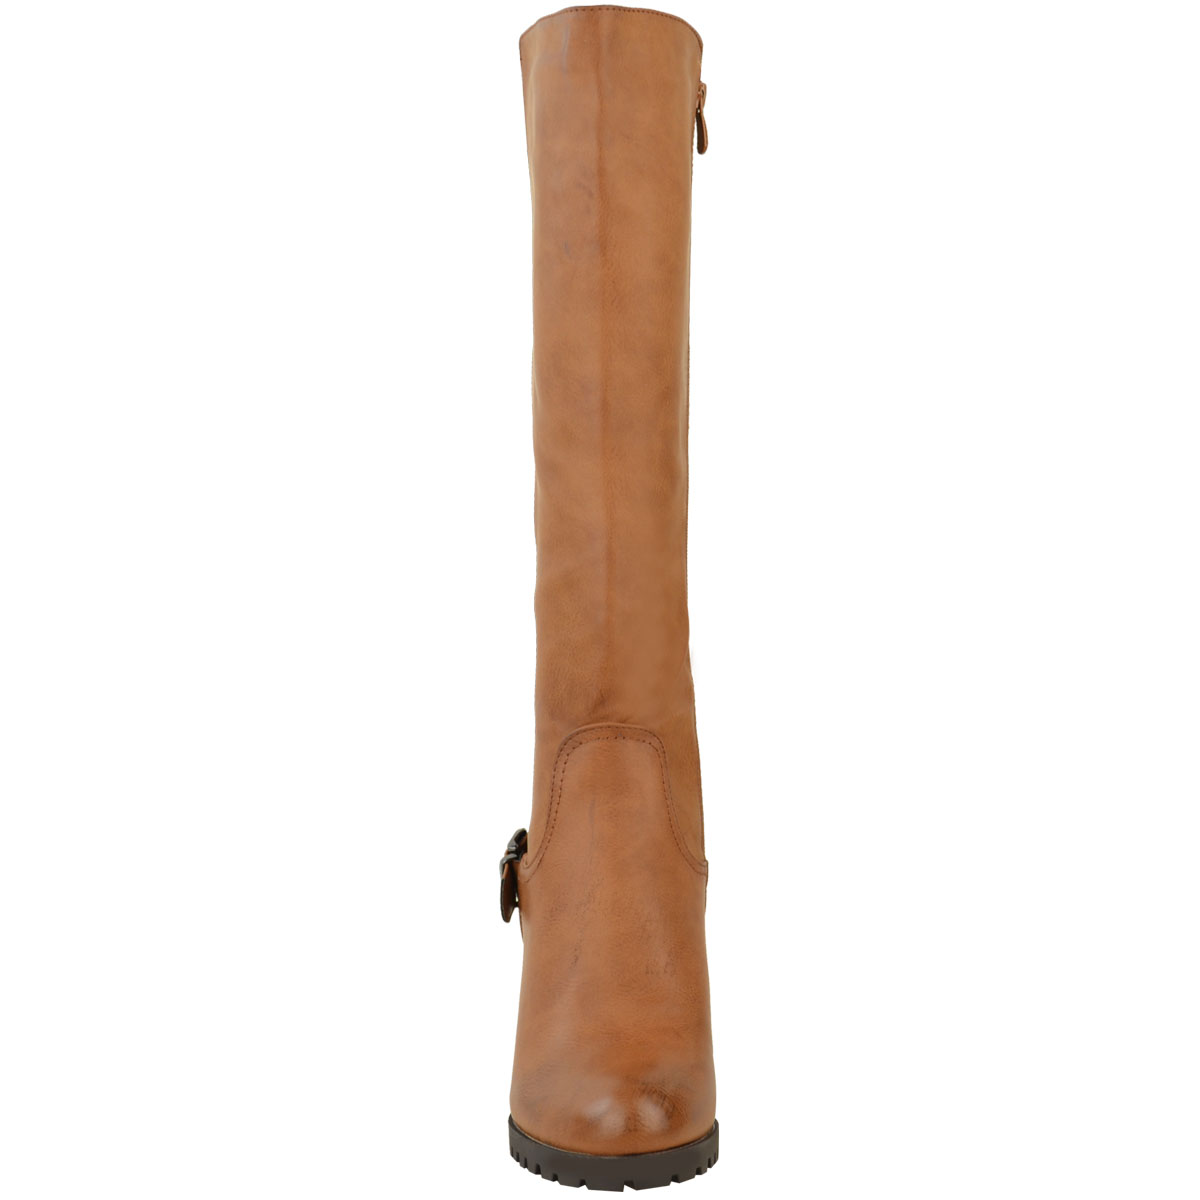 Womens-Ladies-Knee-Calf-High-Boots-Block-Heels-Stretchy-Thigh-Shoes-Grip-Size thumbnail 10